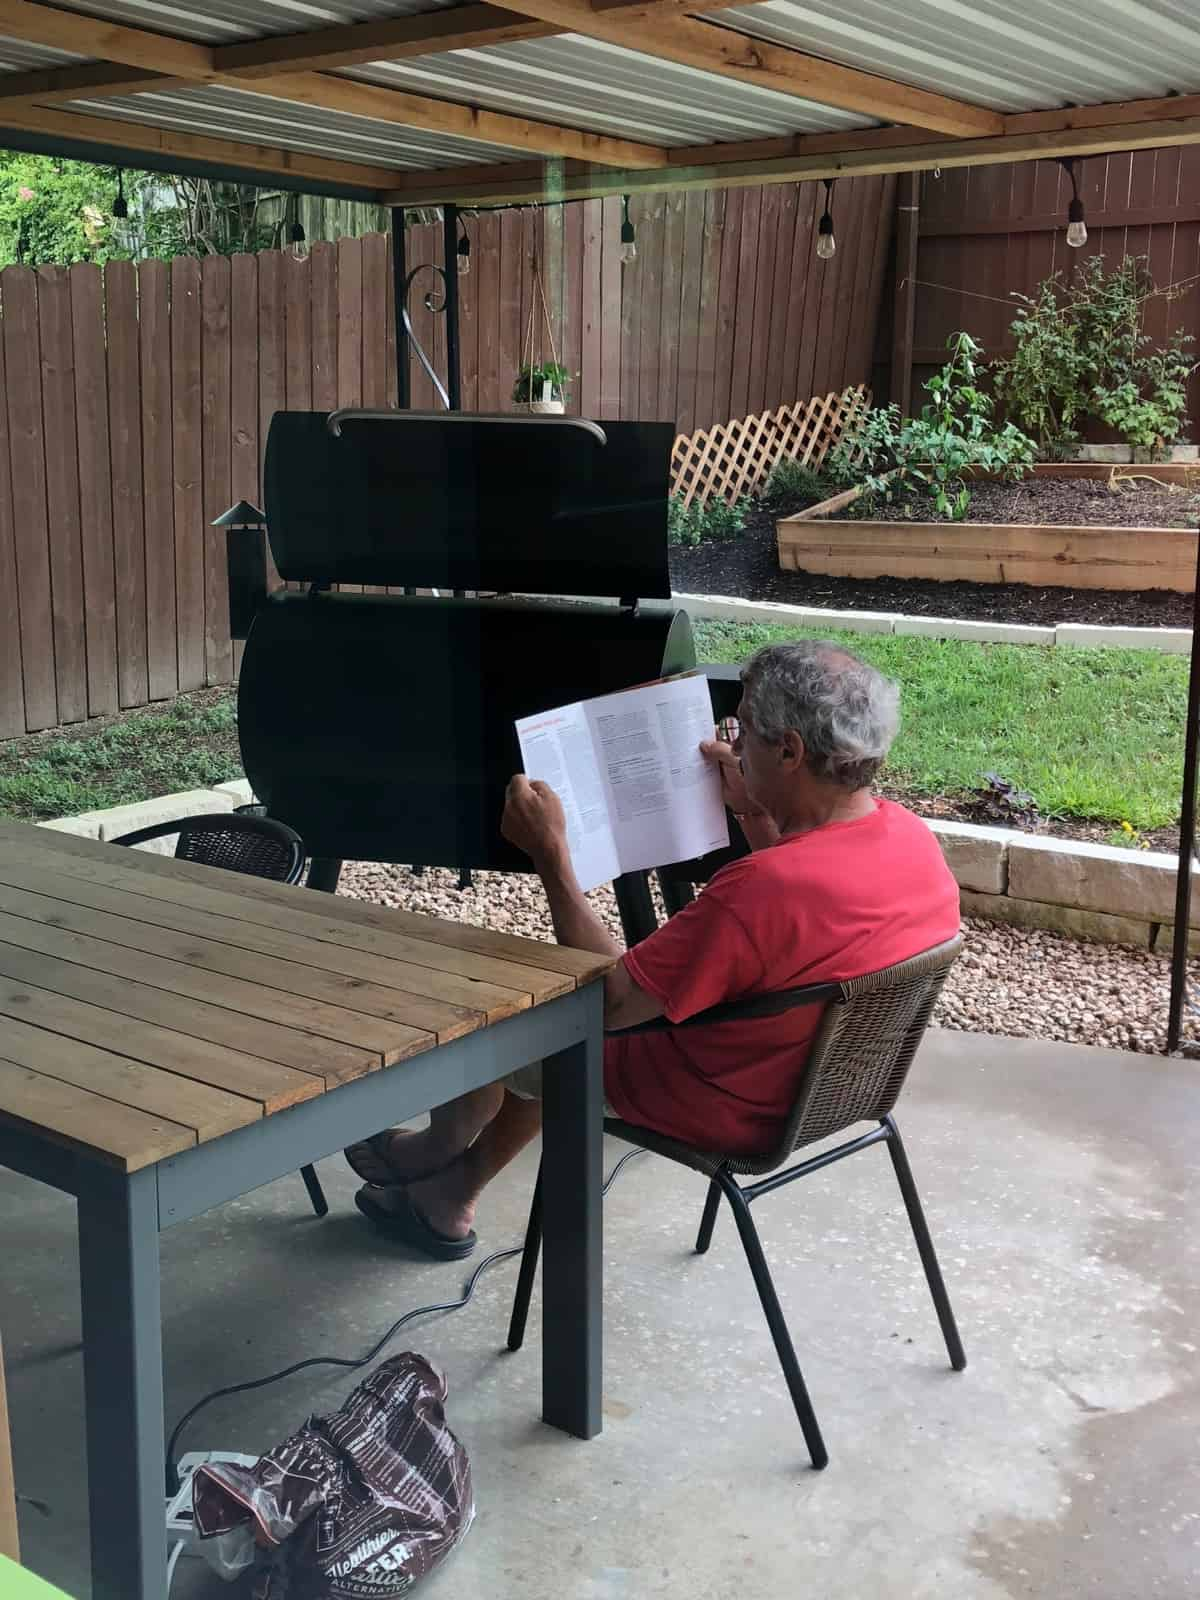 Man reading a manual for a Traeger grill with a Traeger grill behind him